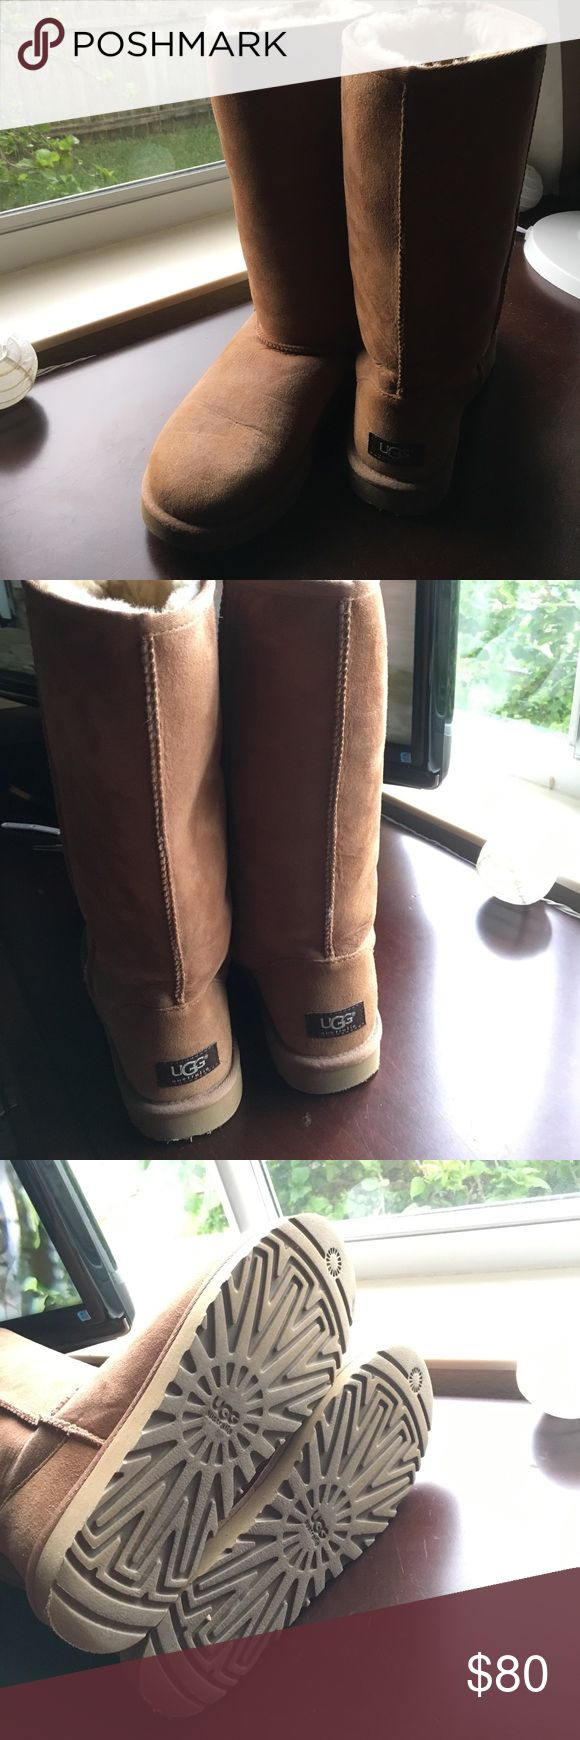 UGG classic tall chestnut boots w protectant spray Excellent condition. Comes with protectant spray! UGG Shoes Winter & Rain Boots